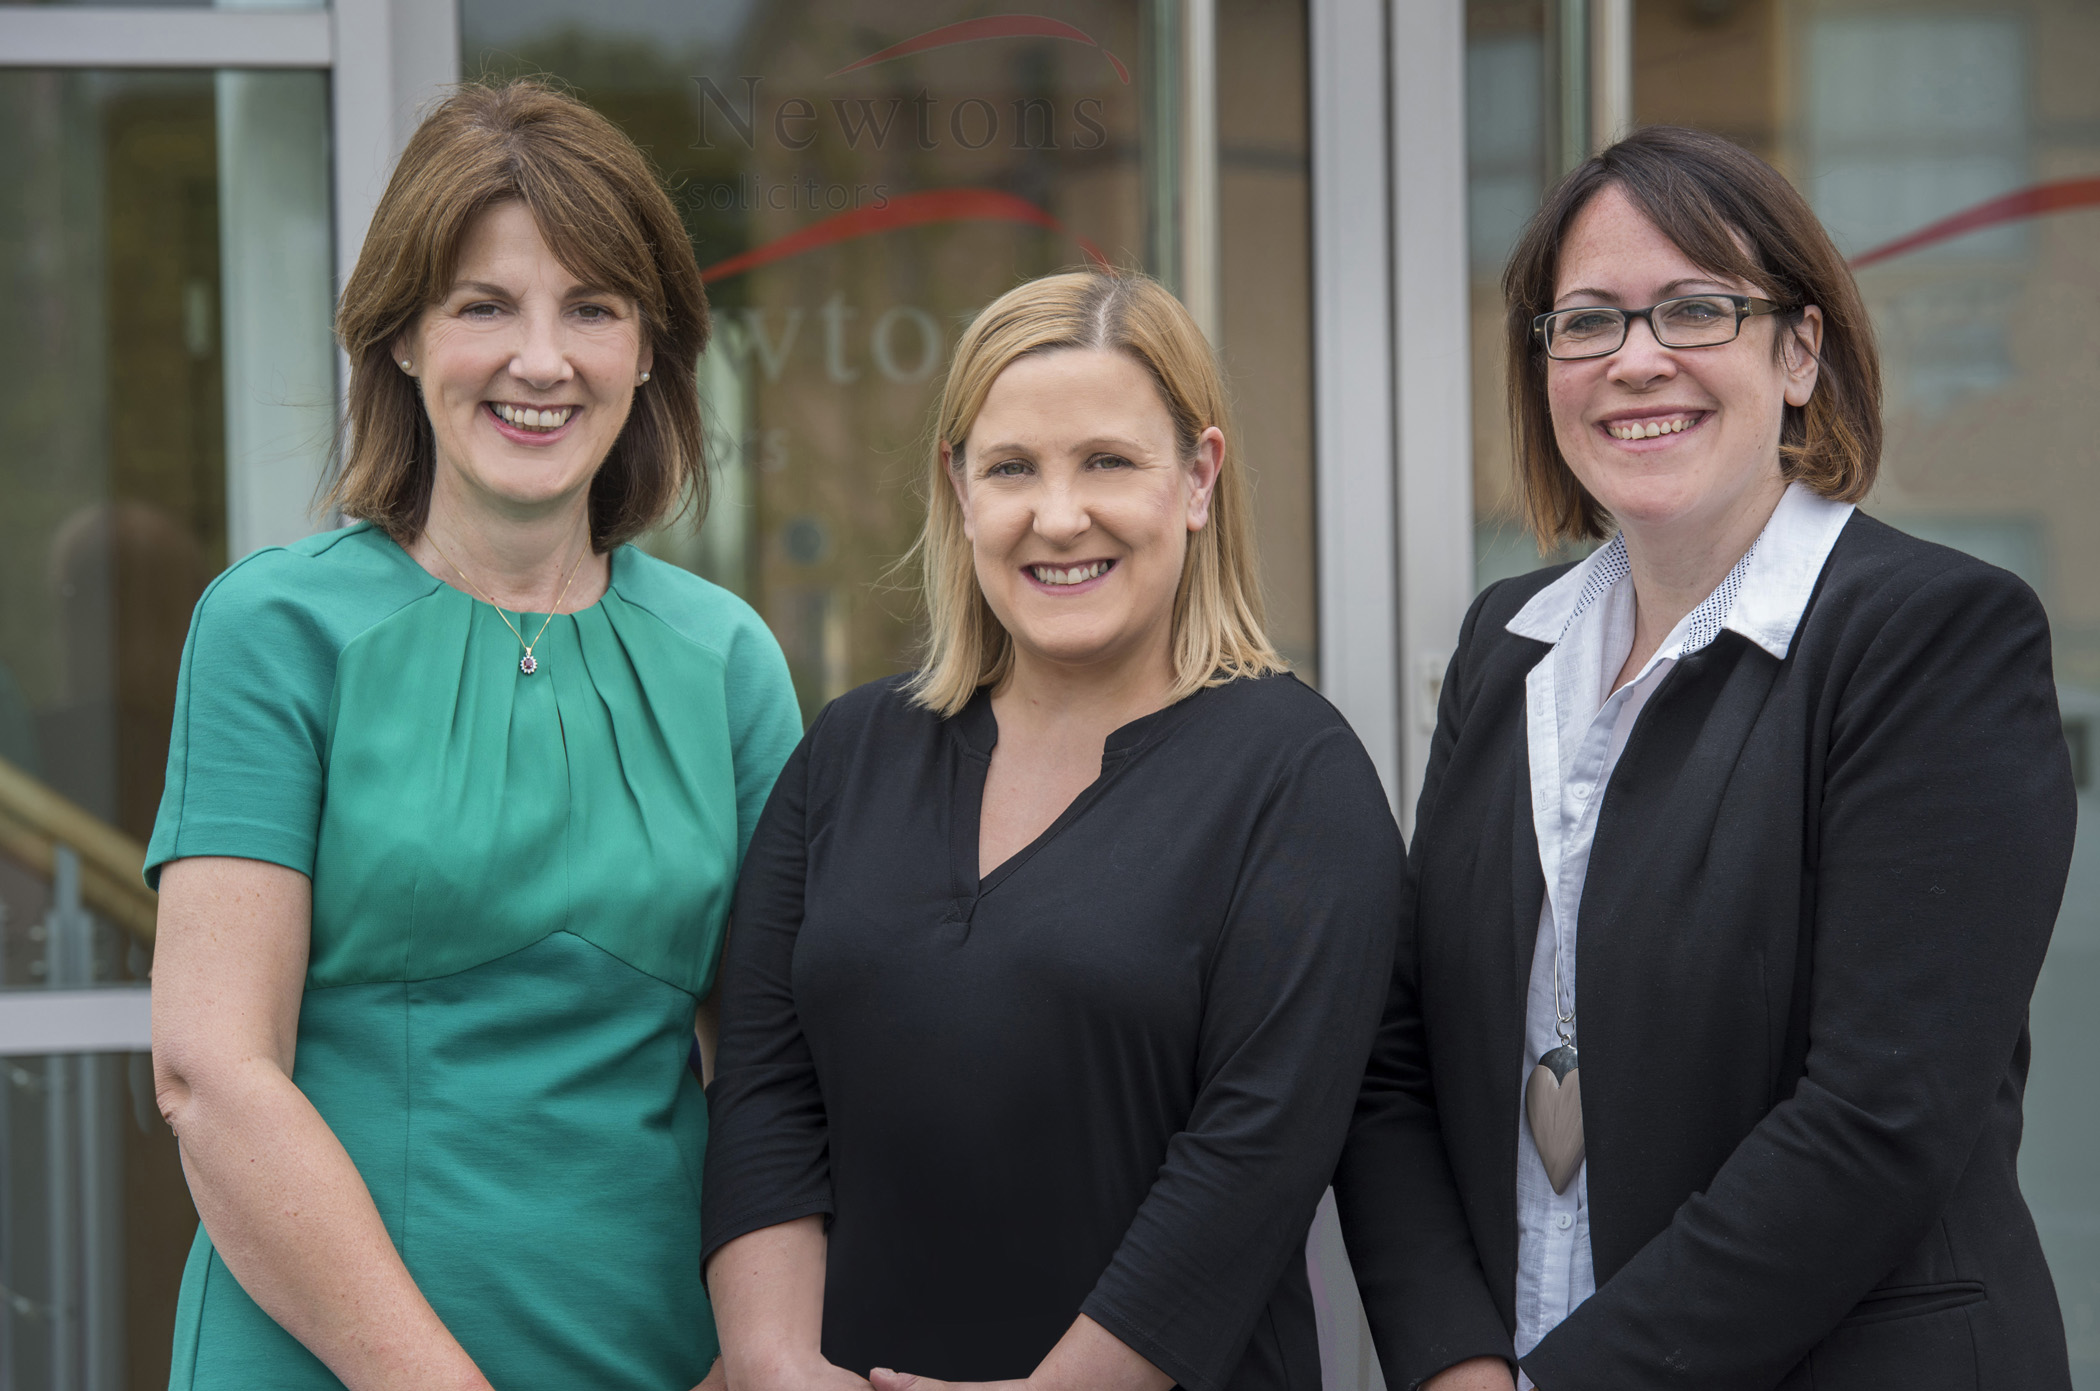 Newtons appoints new Directors